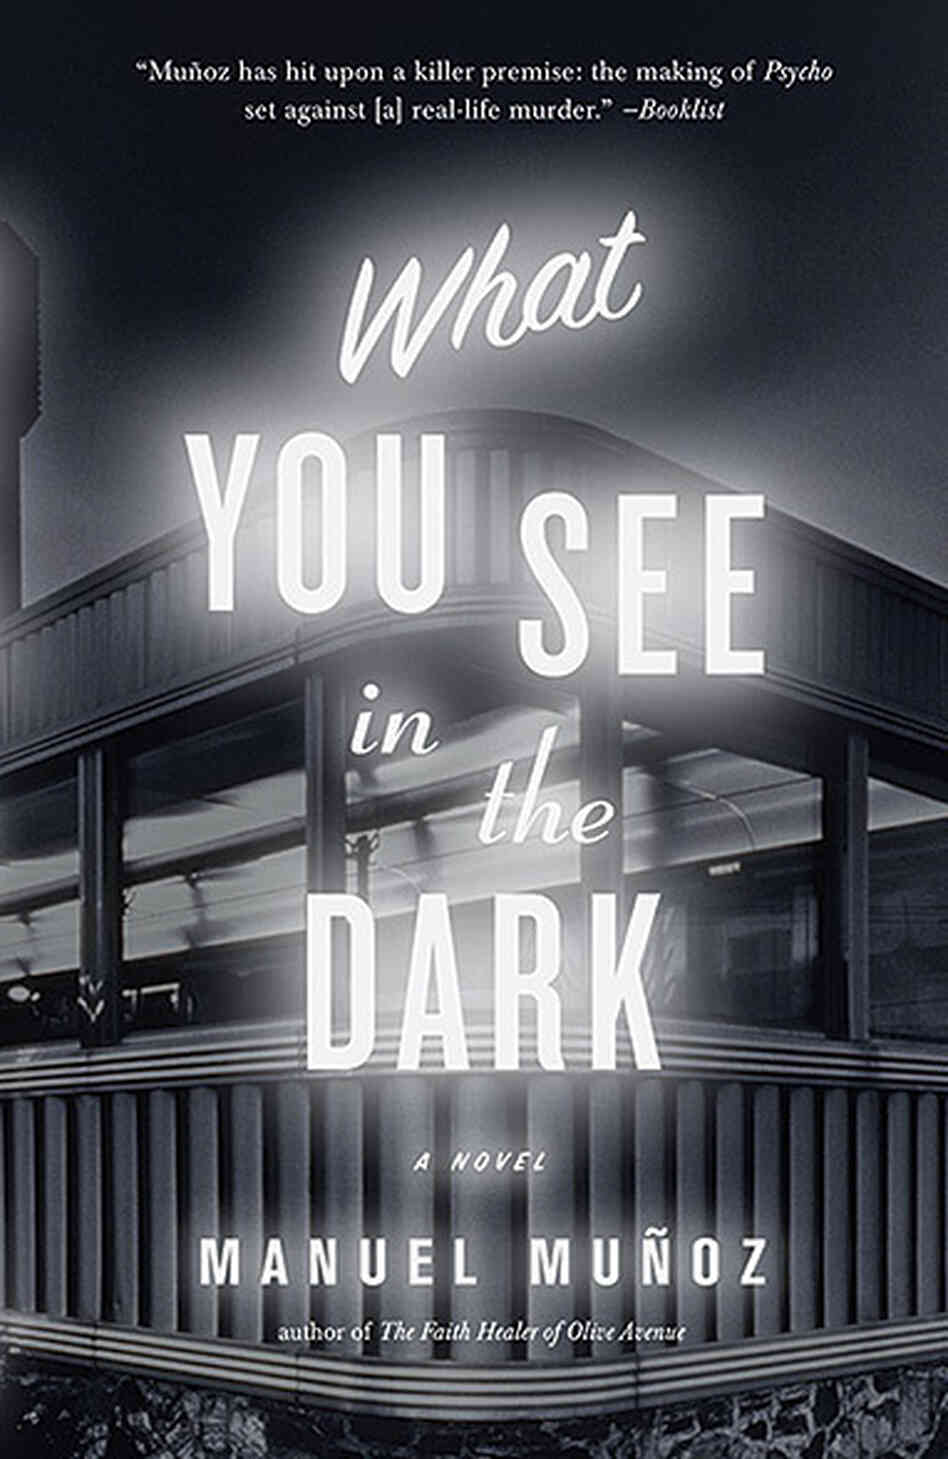 What You See in the Dark, by Manuel Munoz